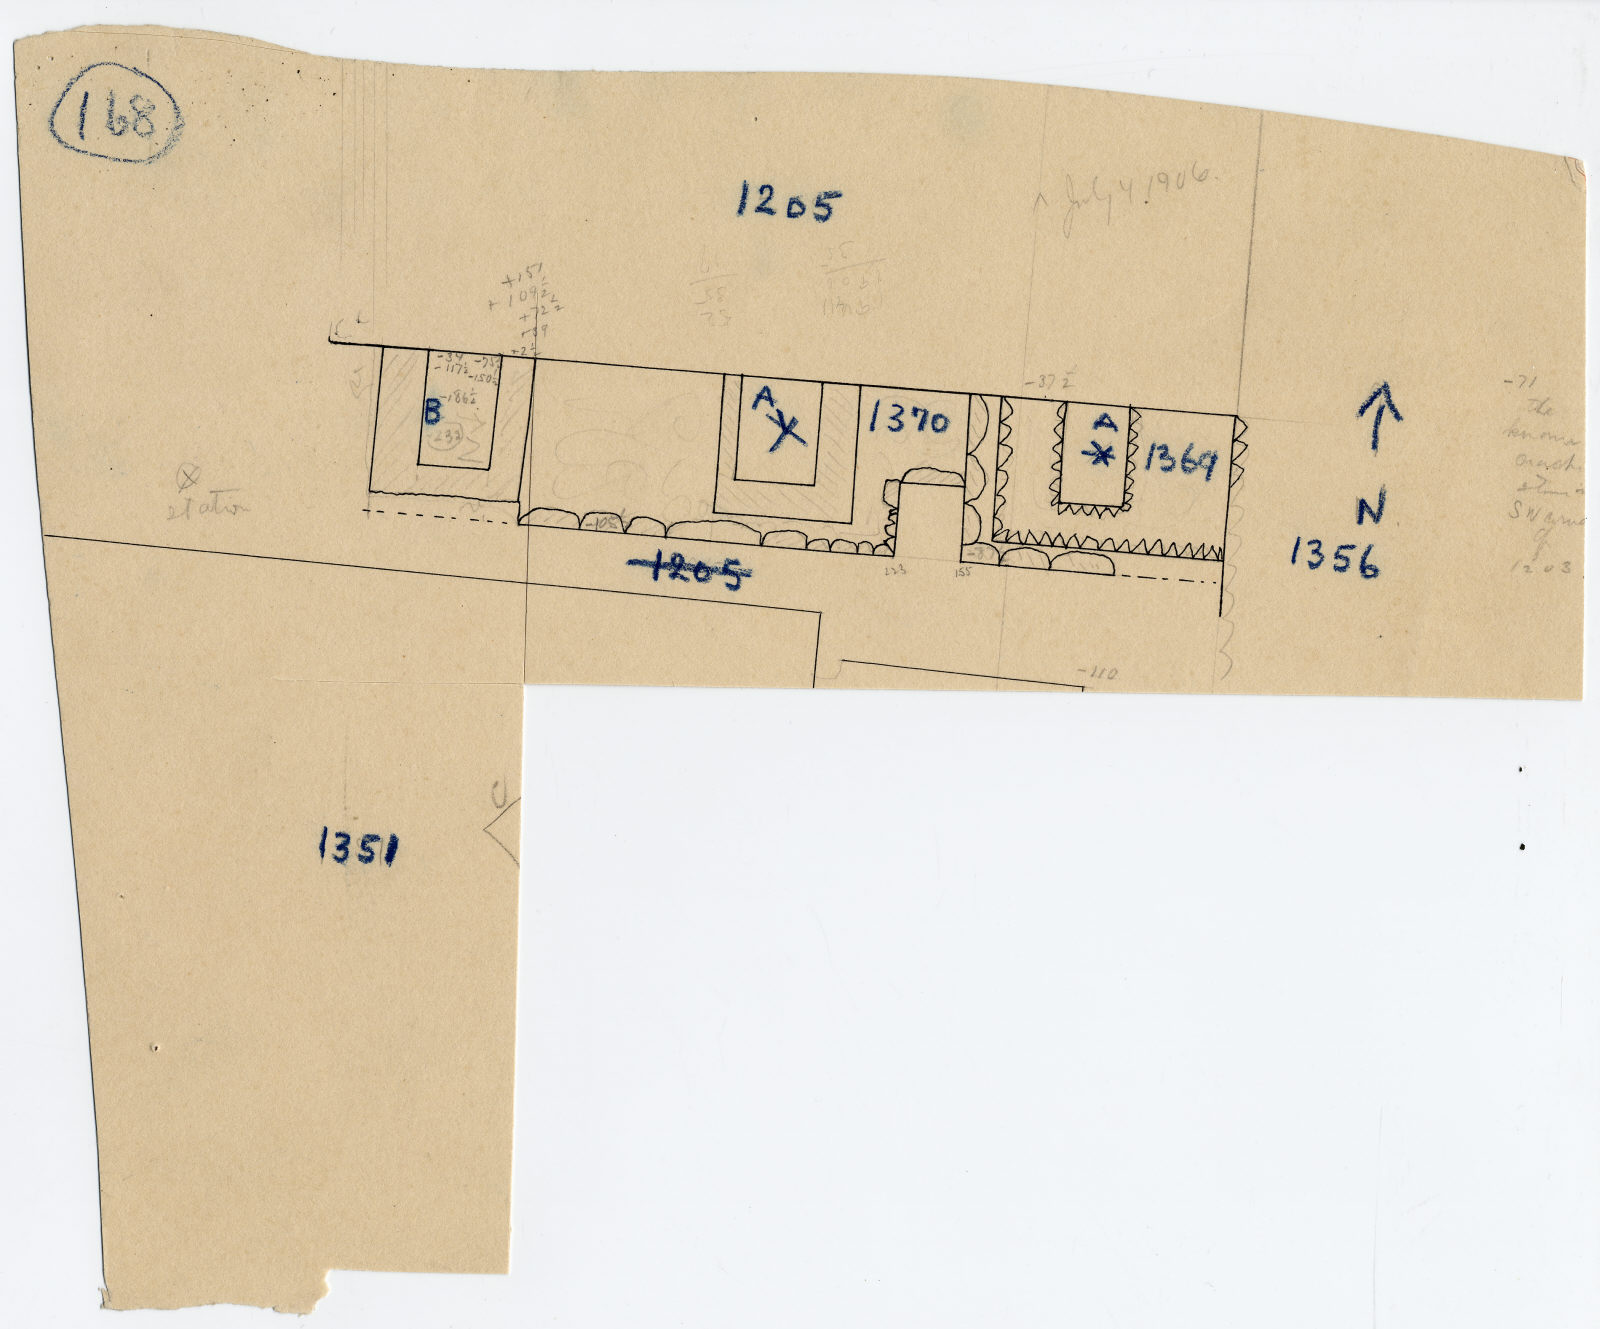 Maps and plans: Plan of G 1205, G 1351, G 1356, G 1369, G 1370